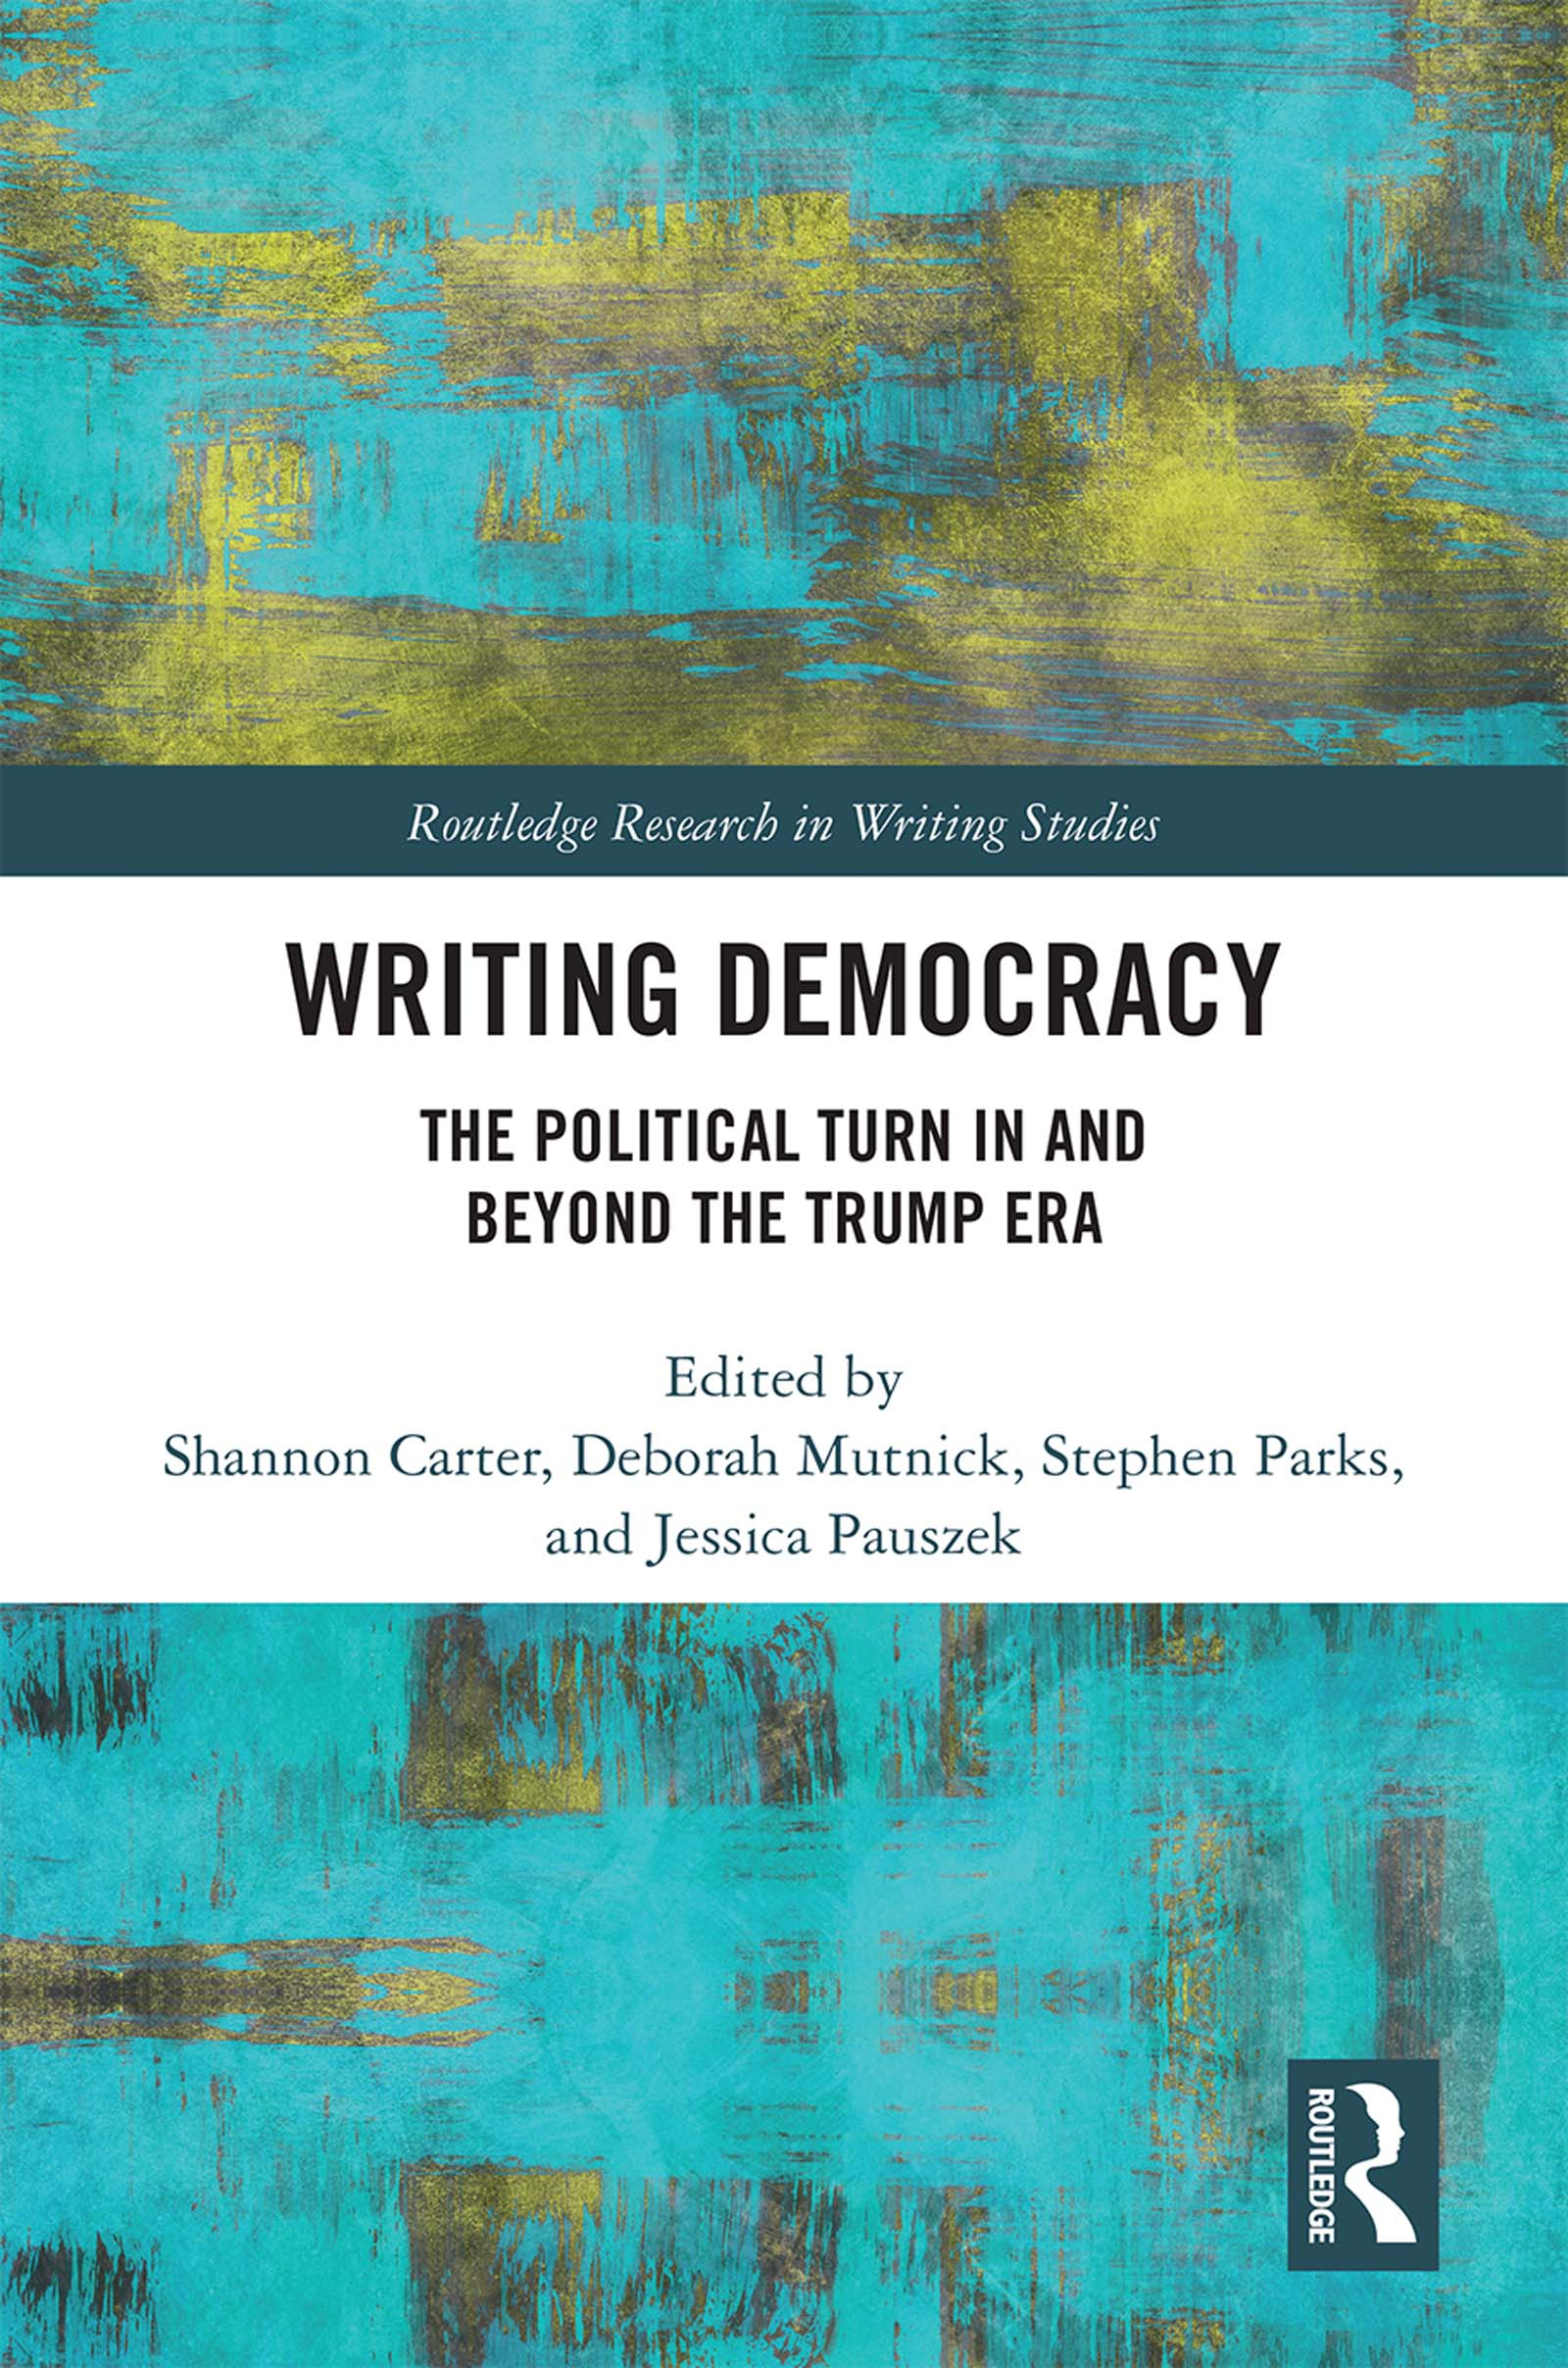 Writing Democracy: The Political Turn in and Beyond the Trump Era book cover